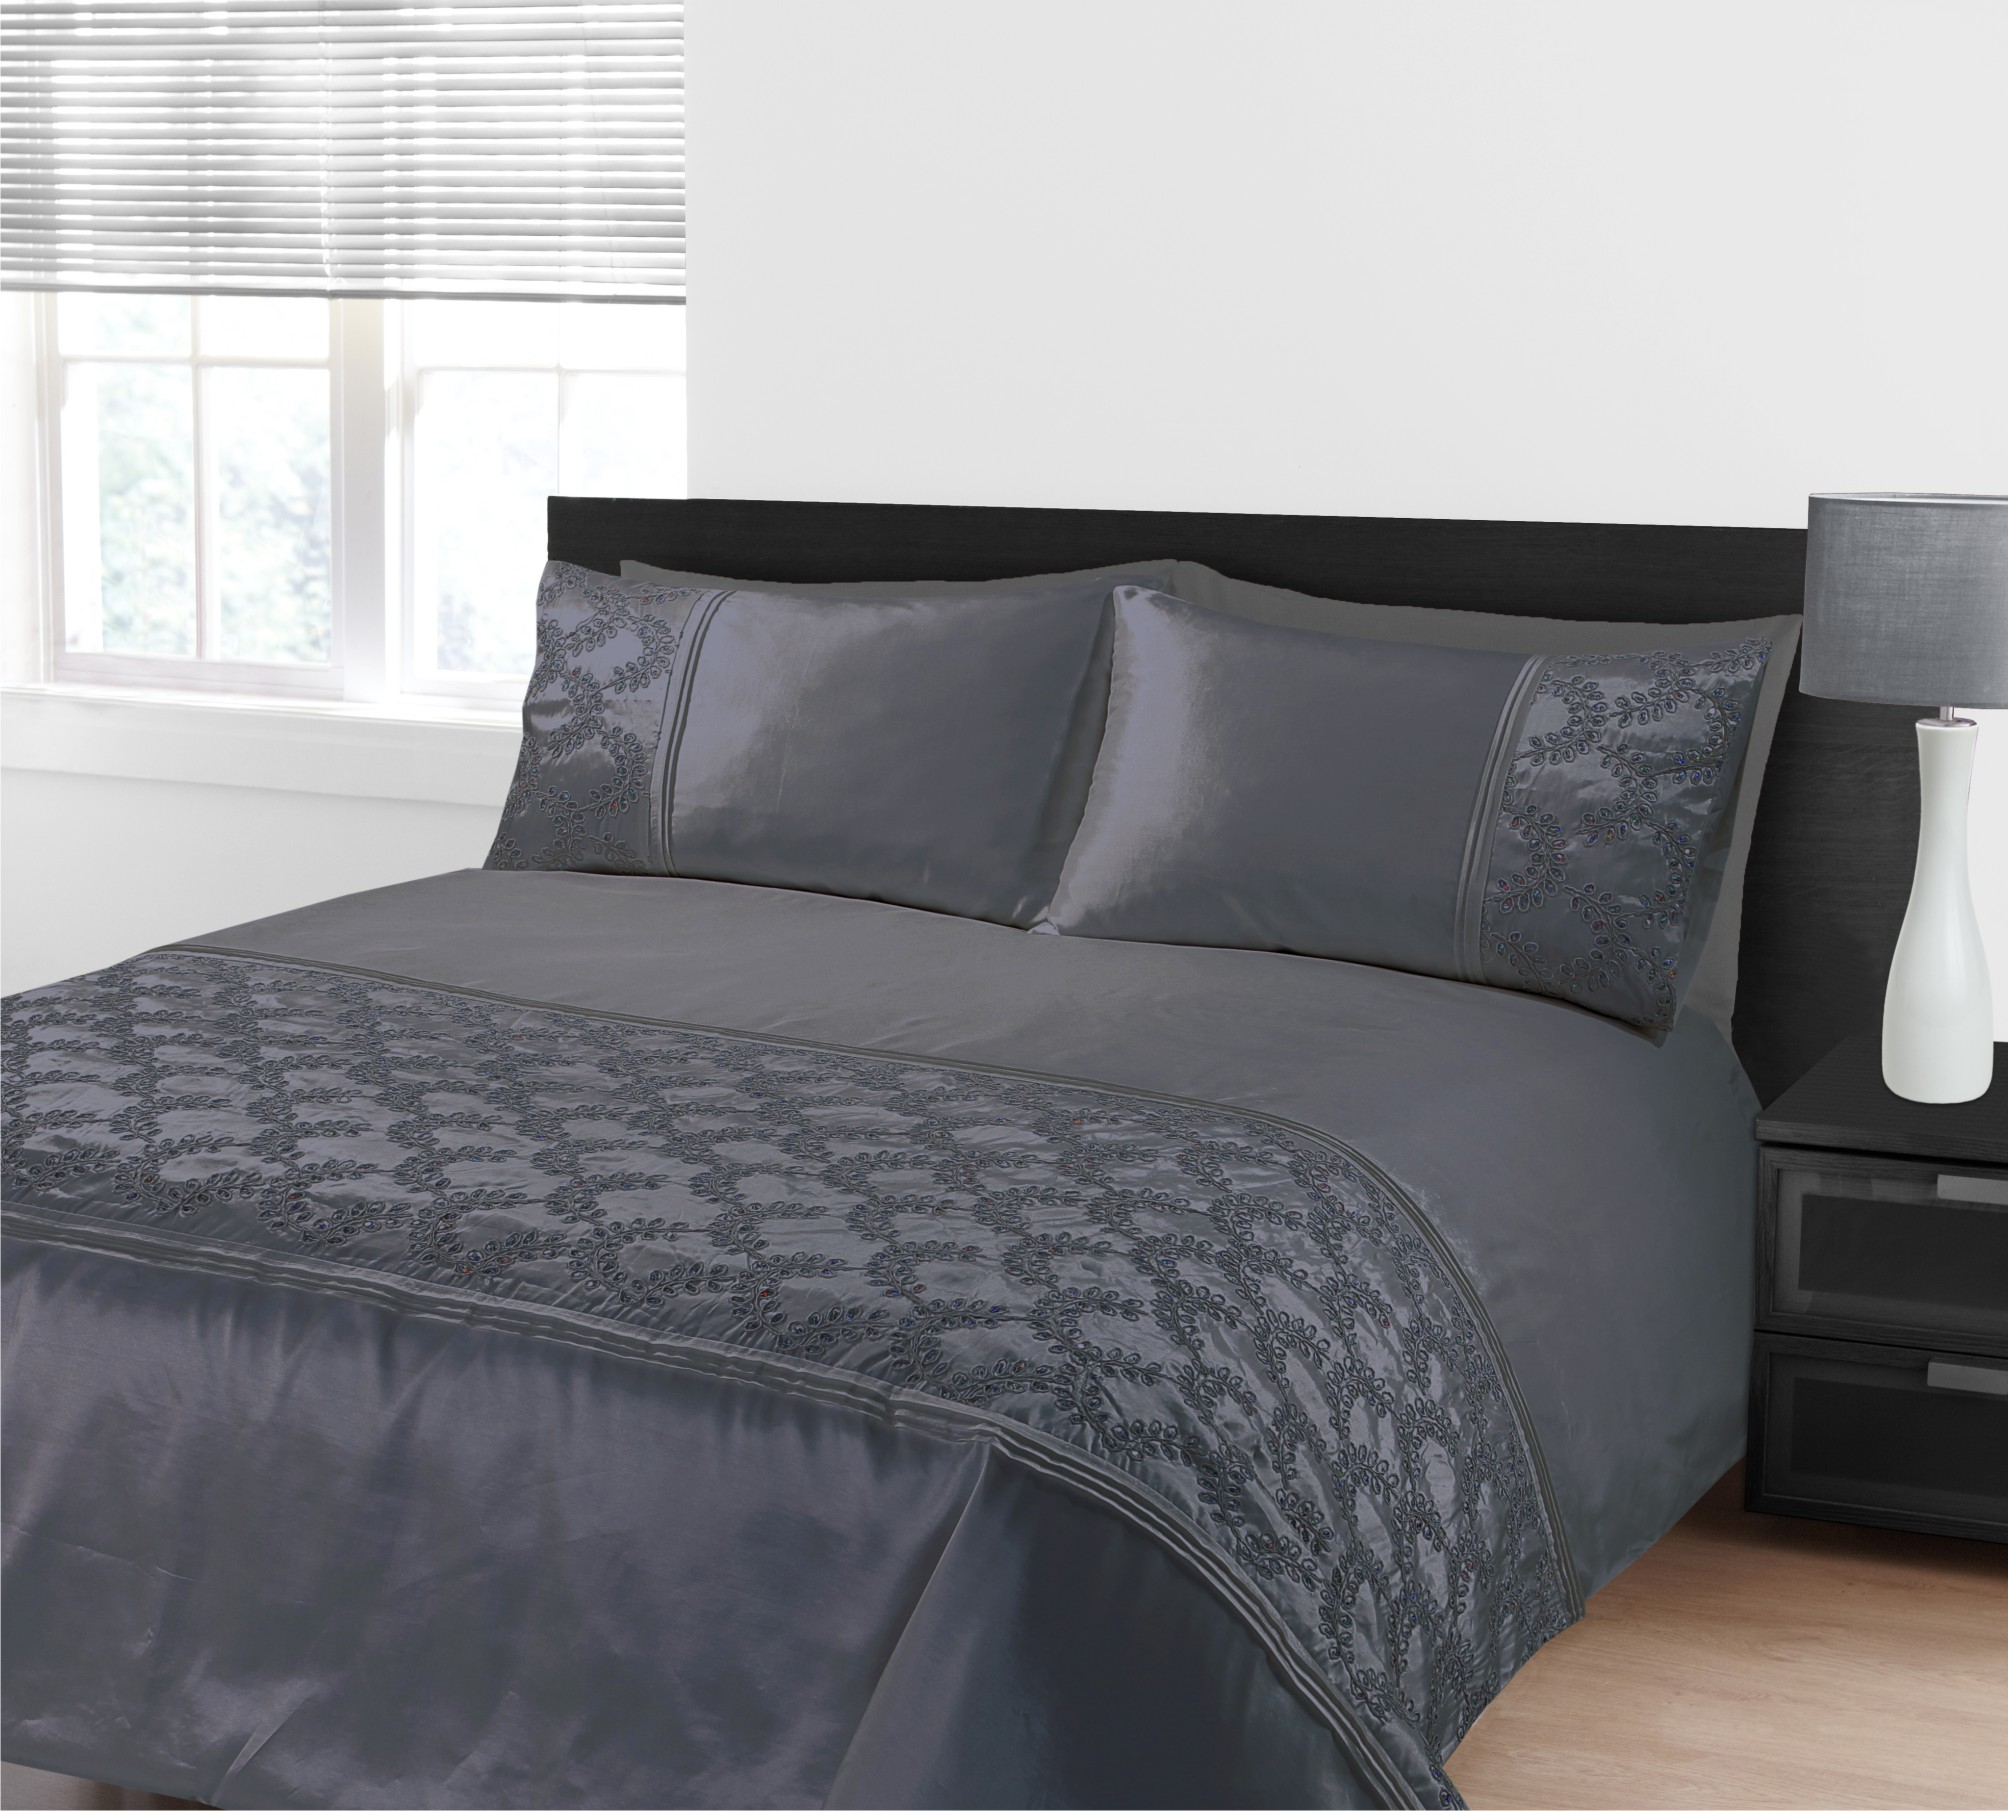 Zara Classic Grey Embroidered Sequins Duvet Cover Bedding